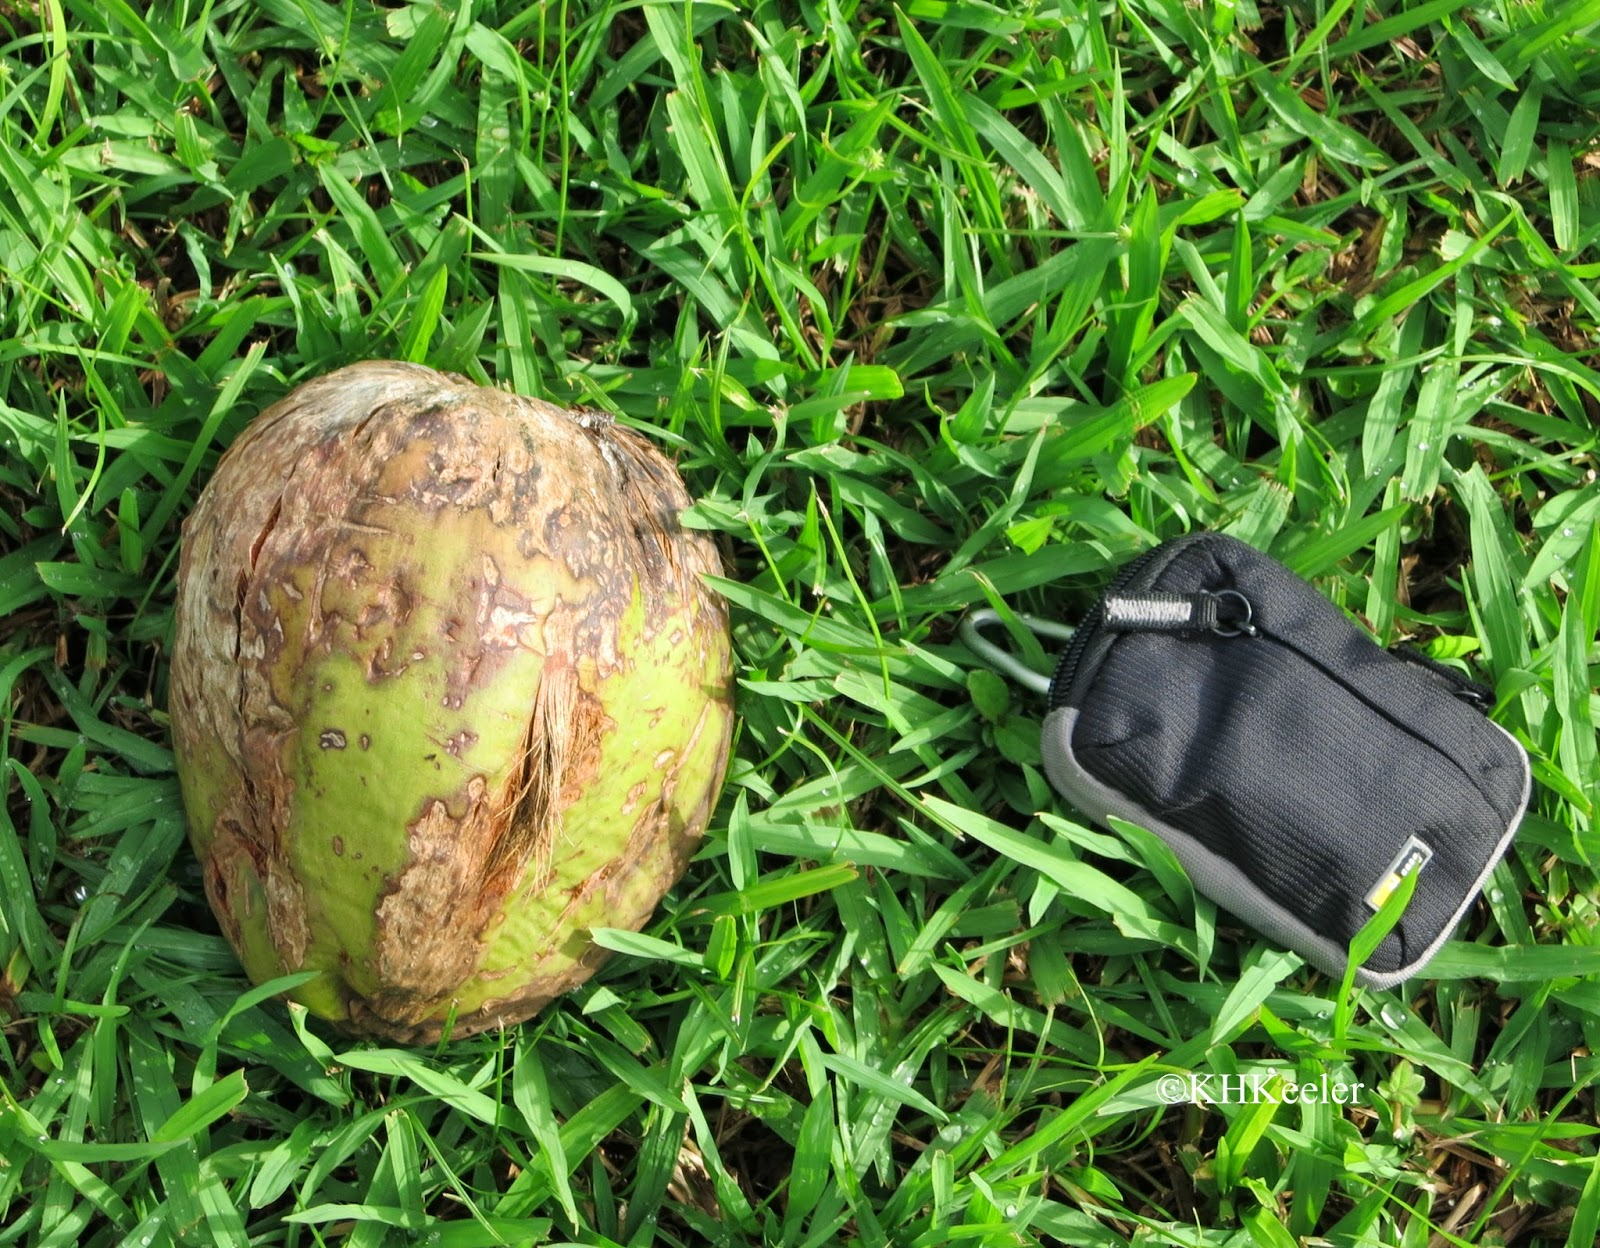 coconut with camera case for scale